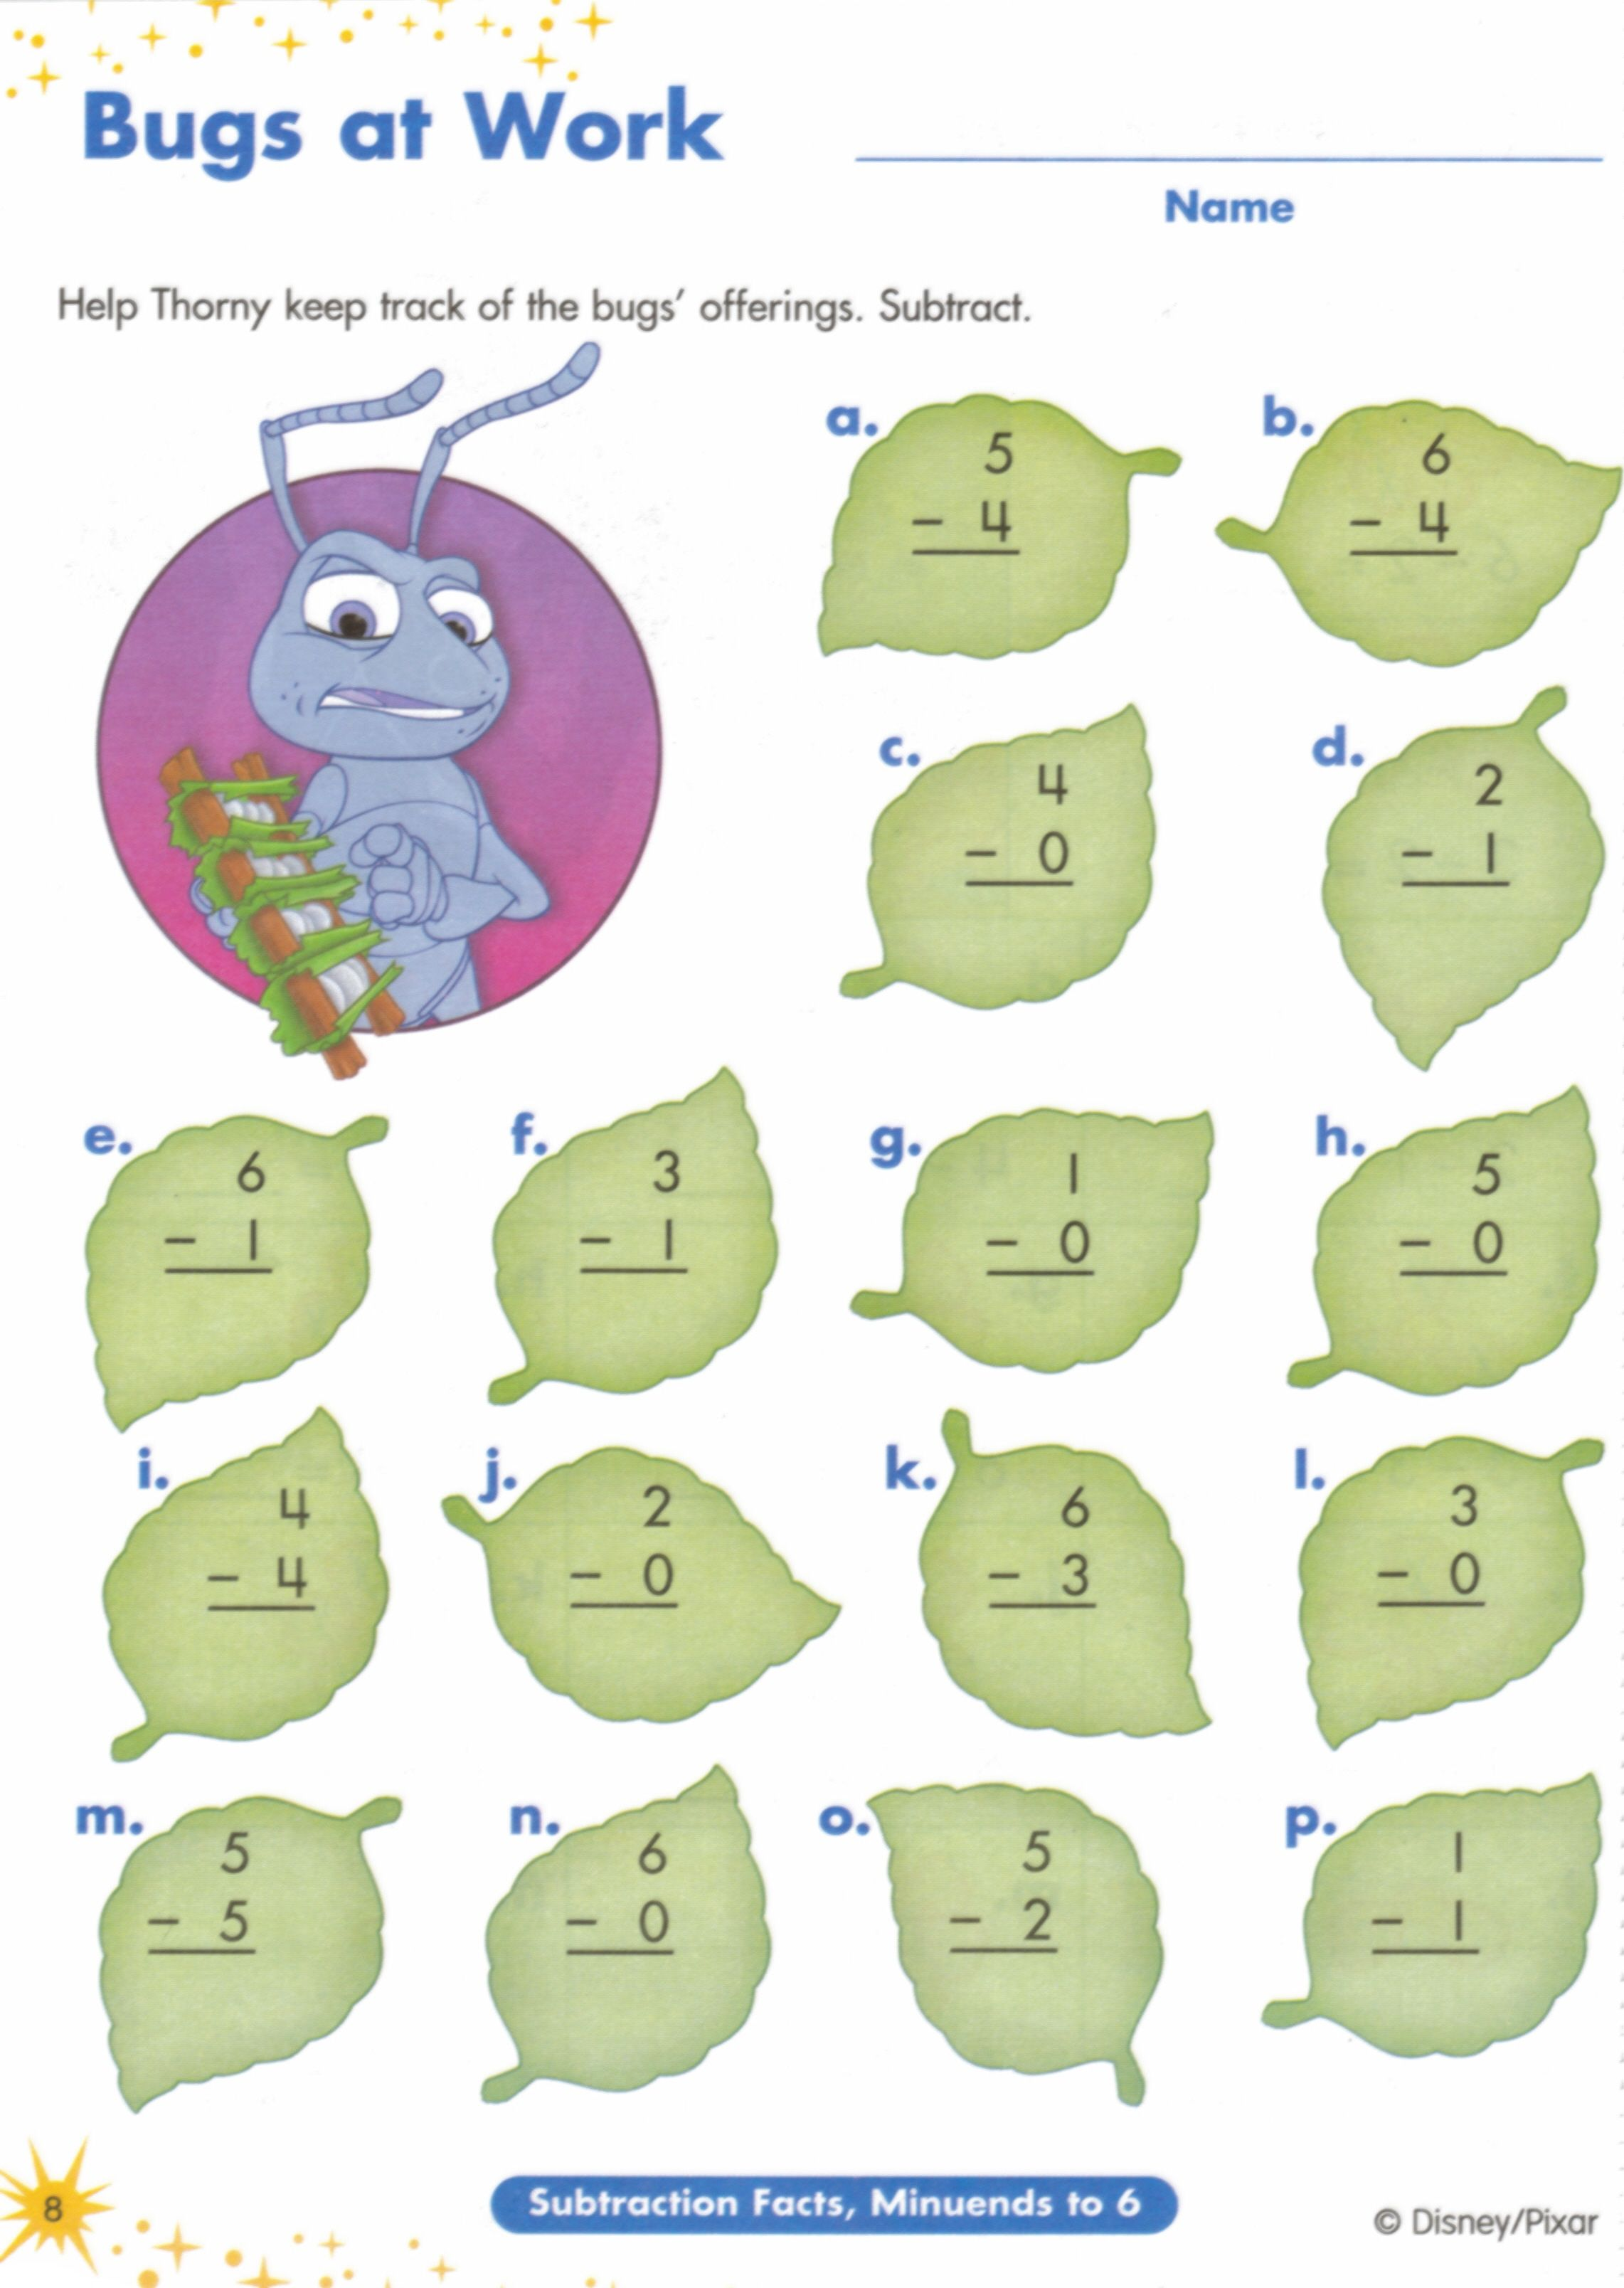 Proatmealus  Outstanding  Images About Worksheets On Pinterest  Fun Facts For Kids  With Excellent  Images About Worksheets On Pinterest  Fun Facts For Kids Earth Day Worksheets And Jungles With Comely Worksheets On Special Right Triangles Also Missing Number Math Worksheets In Addition Maths Magic Squares Worksheets And Key Stage  Phonics Worksheets As Well As Worksheets On Statistics Additionally Grammar Worksheets For Grade  From Pinterestcom With Proatmealus  Excellent  Images About Worksheets On Pinterest  Fun Facts For Kids  With Comely  Images About Worksheets On Pinterest  Fun Facts For Kids Earth Day Worksheets And Jungles And Outstanding Worksheets On Special Right Triangles Also Missing Number Math Worksheets In Addition Maths Magic Squares Worksheets From Pinterestcom